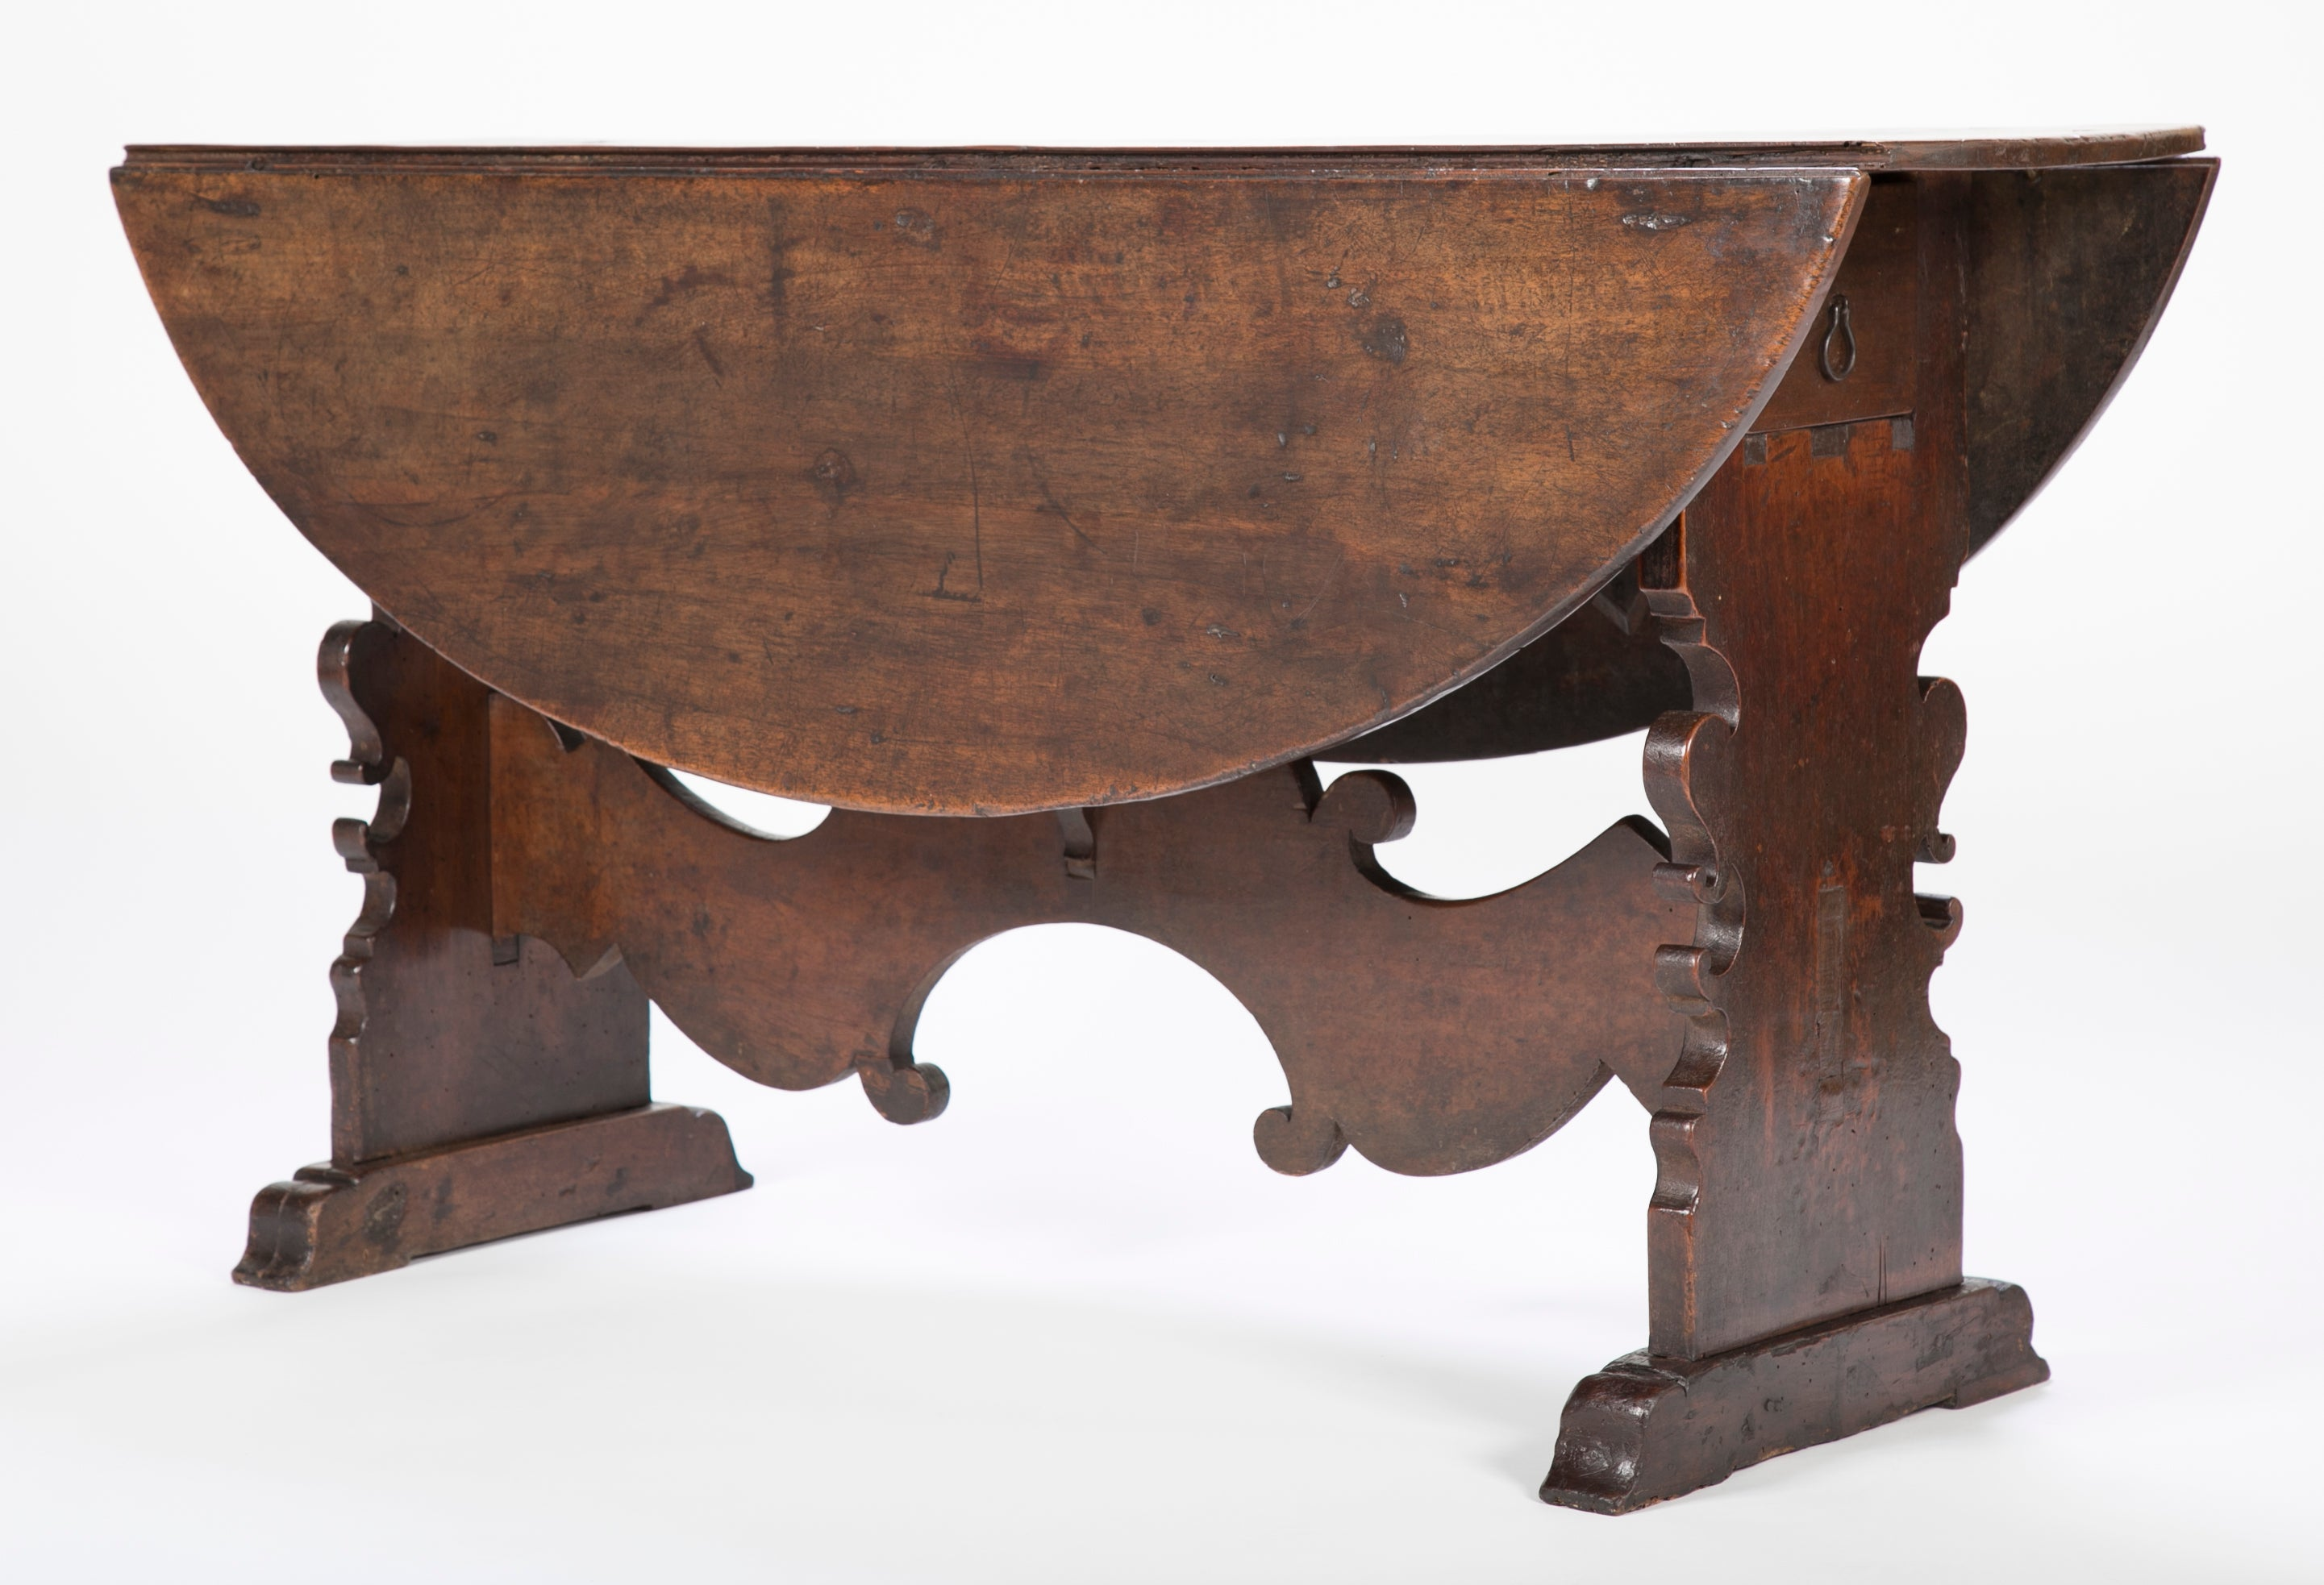 Genial Italian Baroque Walnut Drop Leaf Table